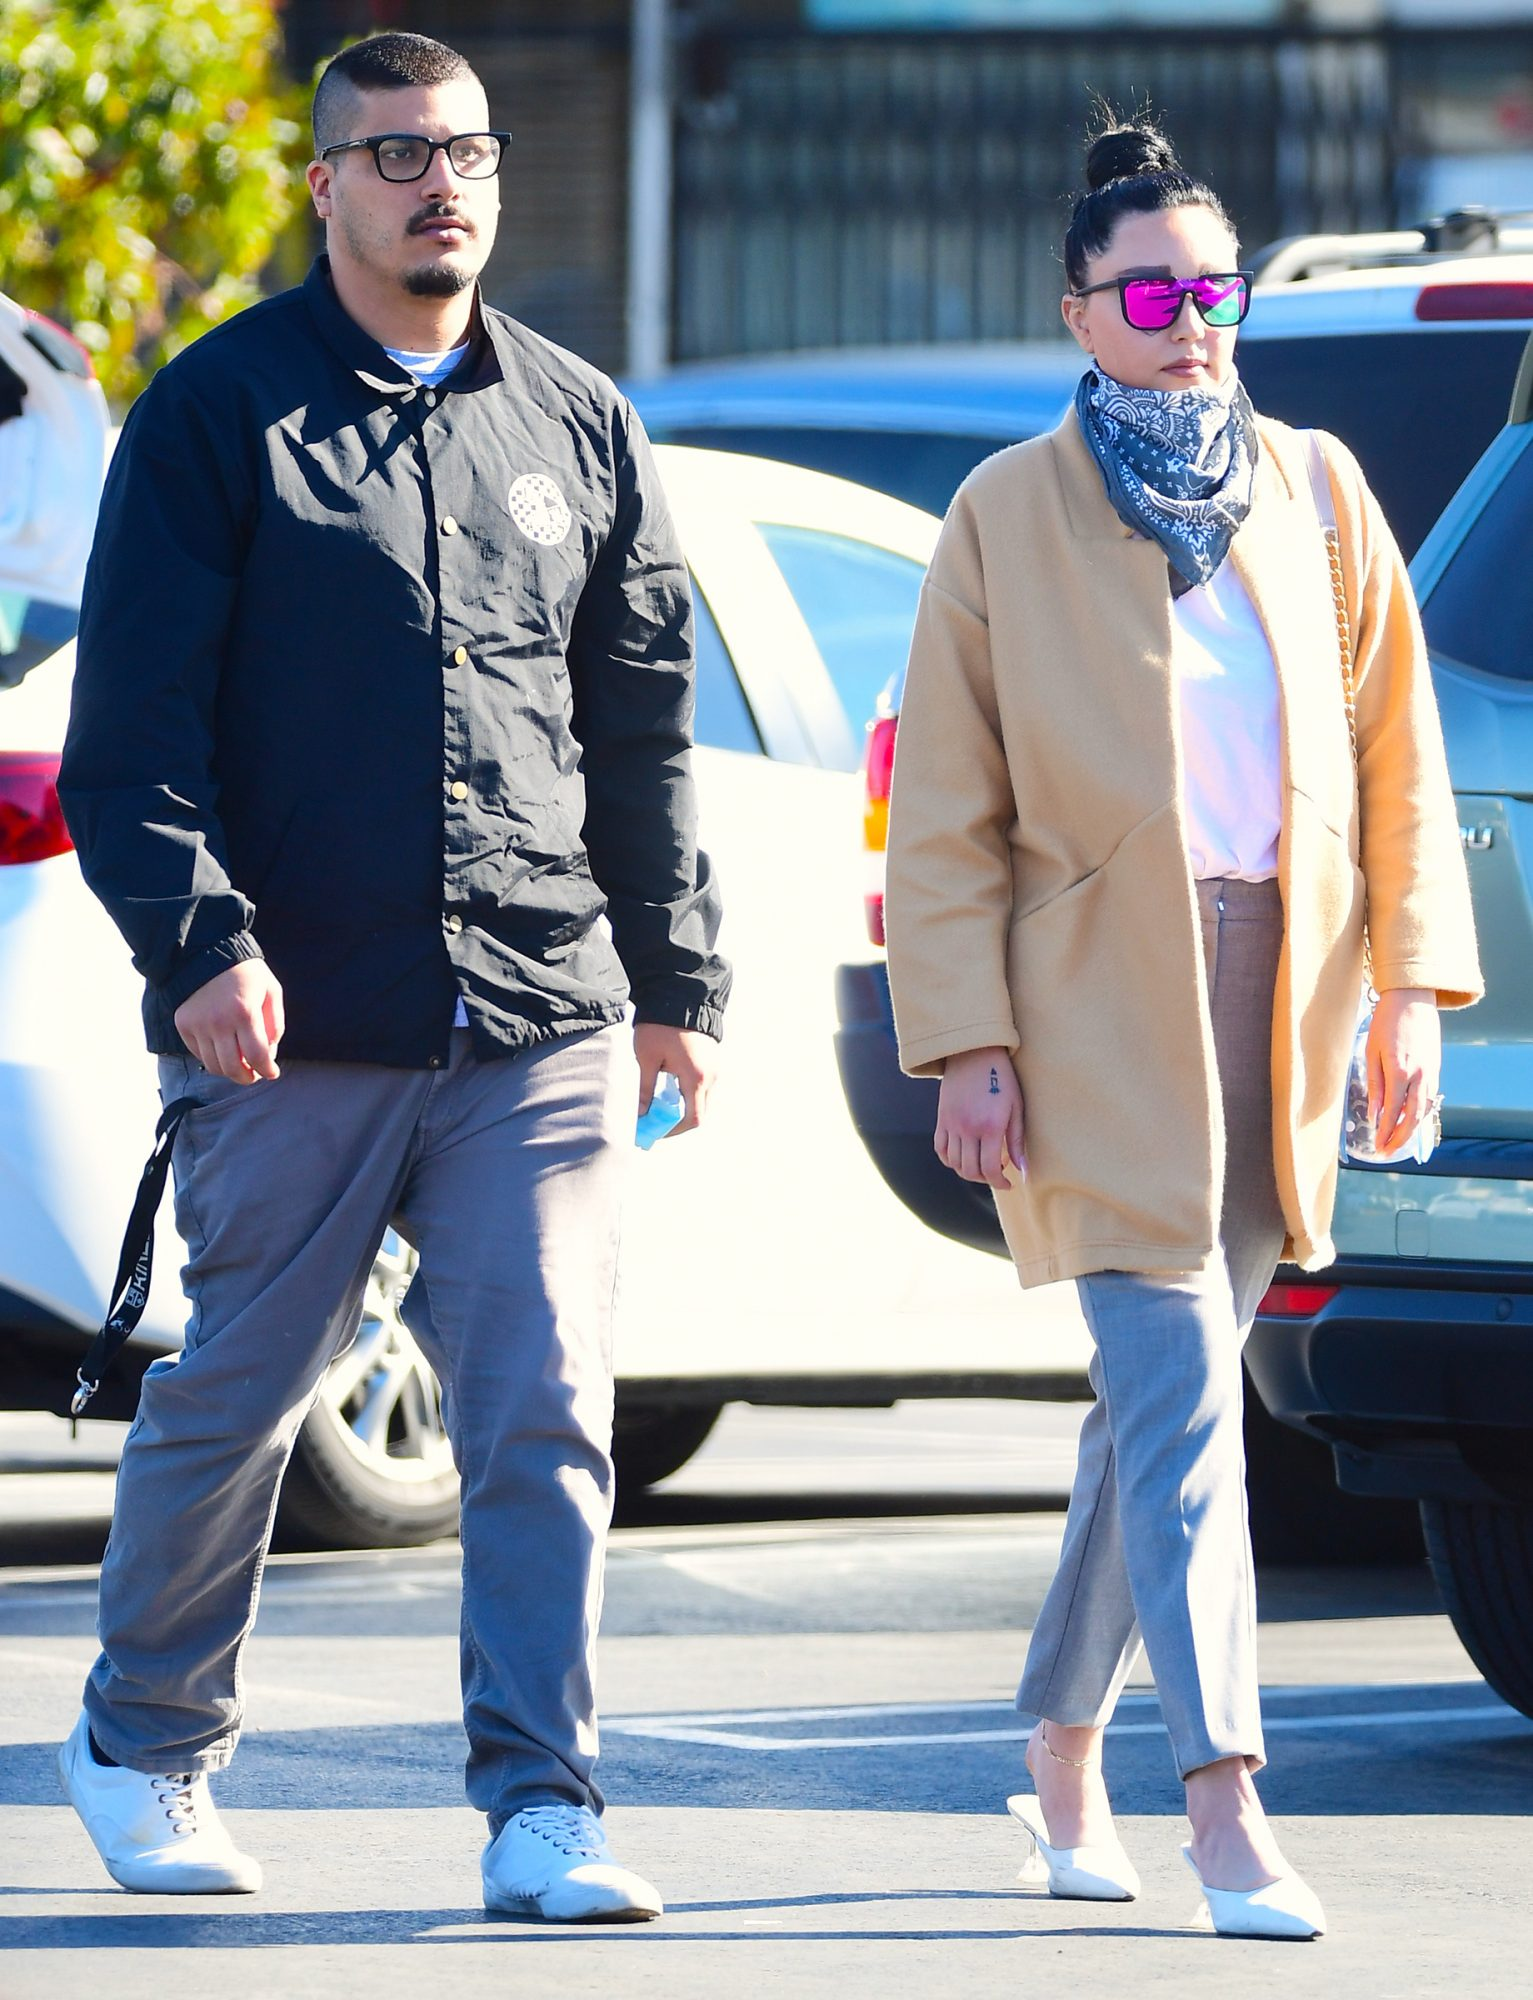 Amanda Bynes Sports New Chic Look As She Steps Out For Grocery Run with Fiancé Paul Michael.